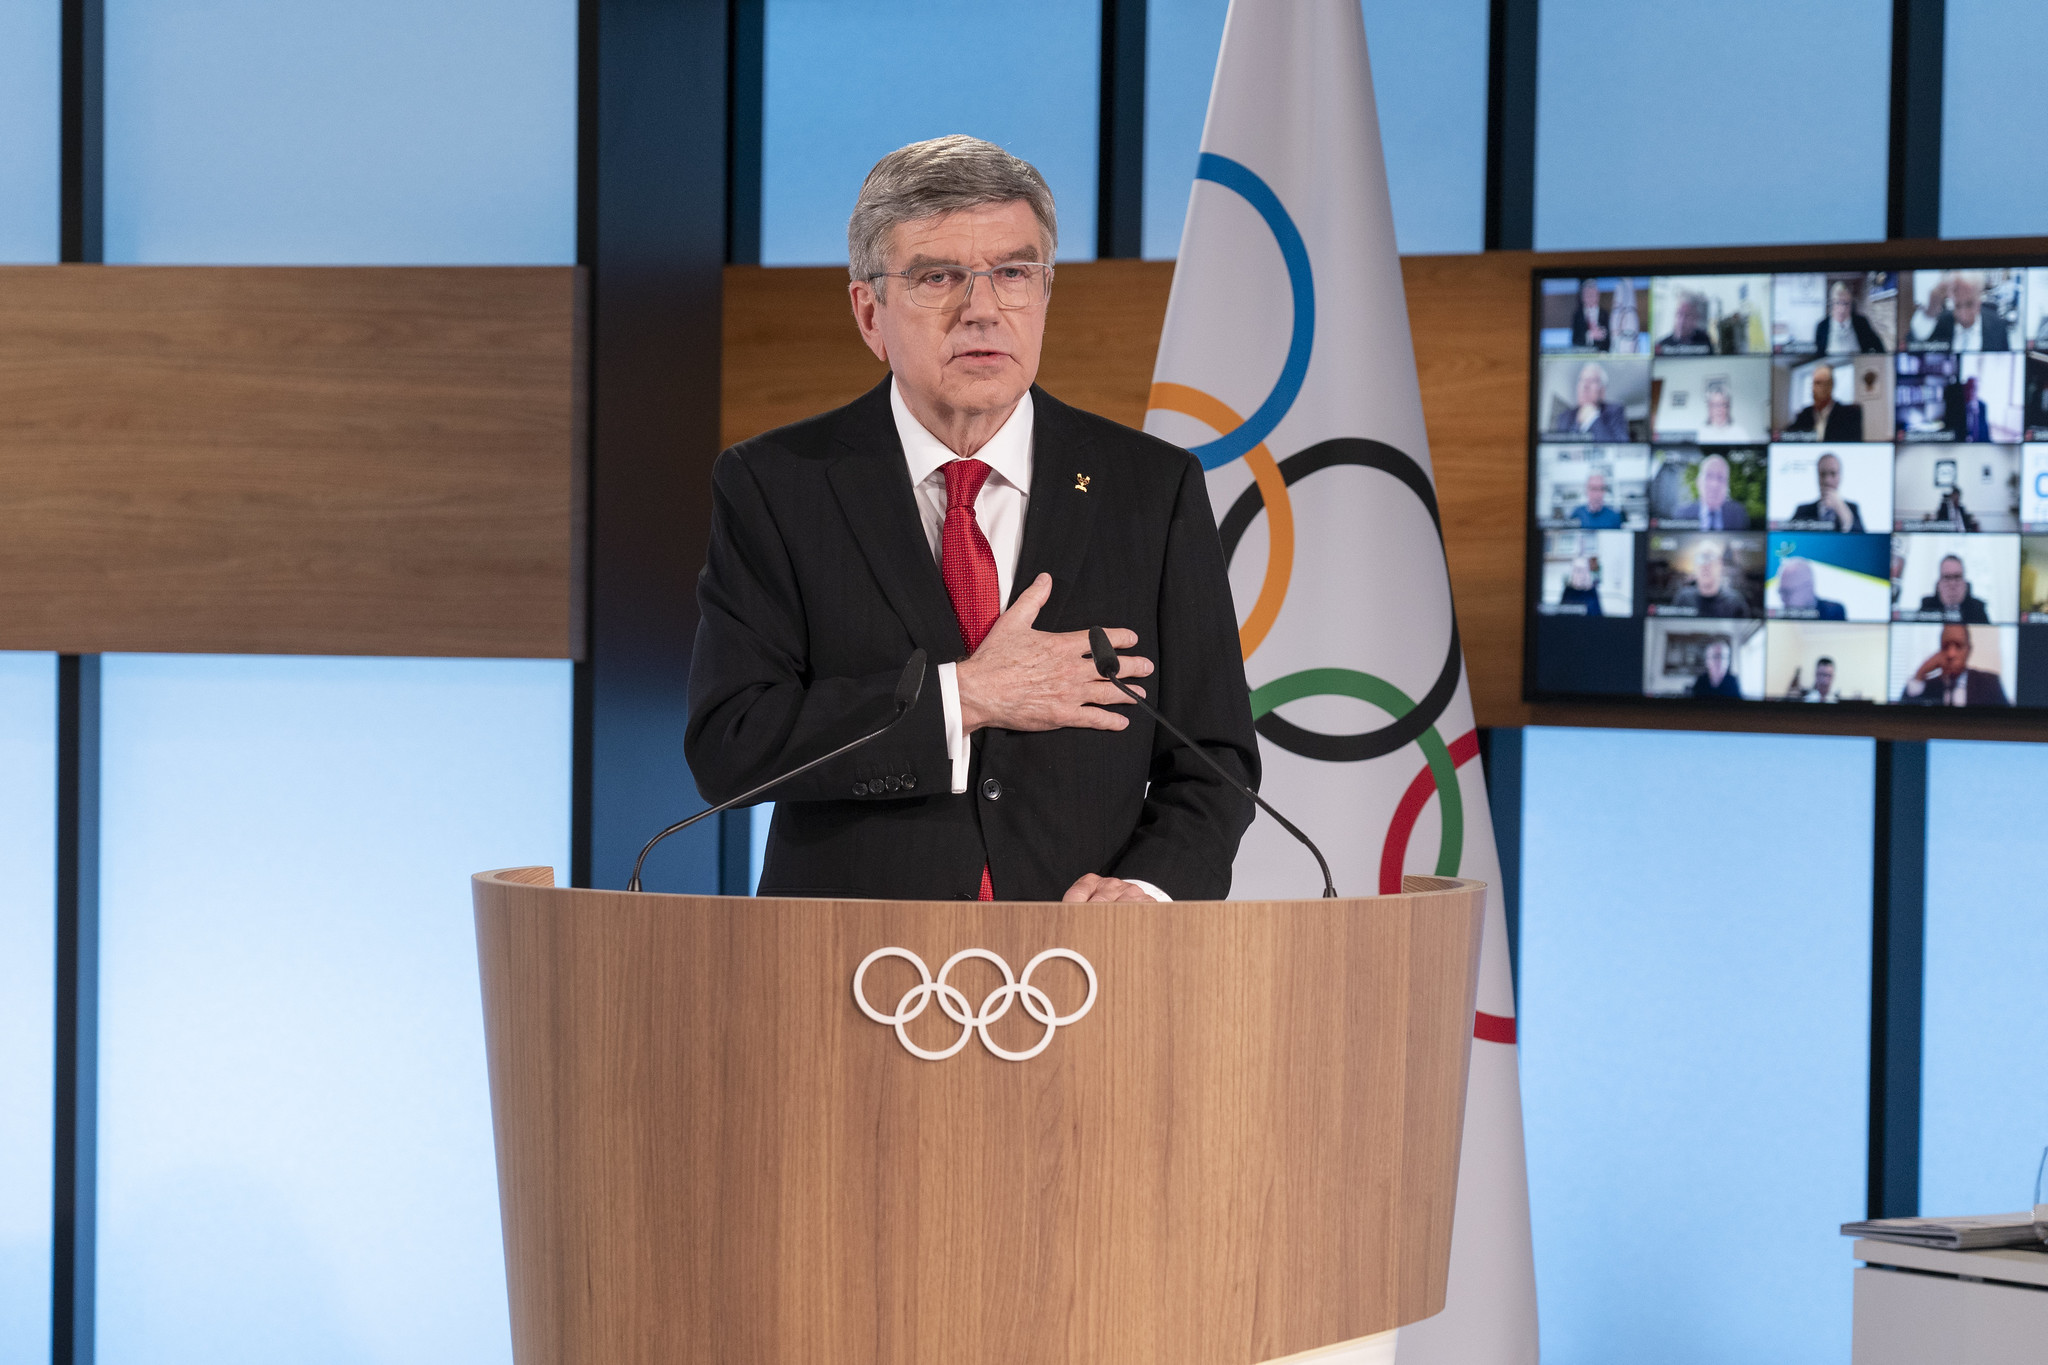 Thomas Bach was re-elected with 93 votes, with one against and four abstentions ©IOC